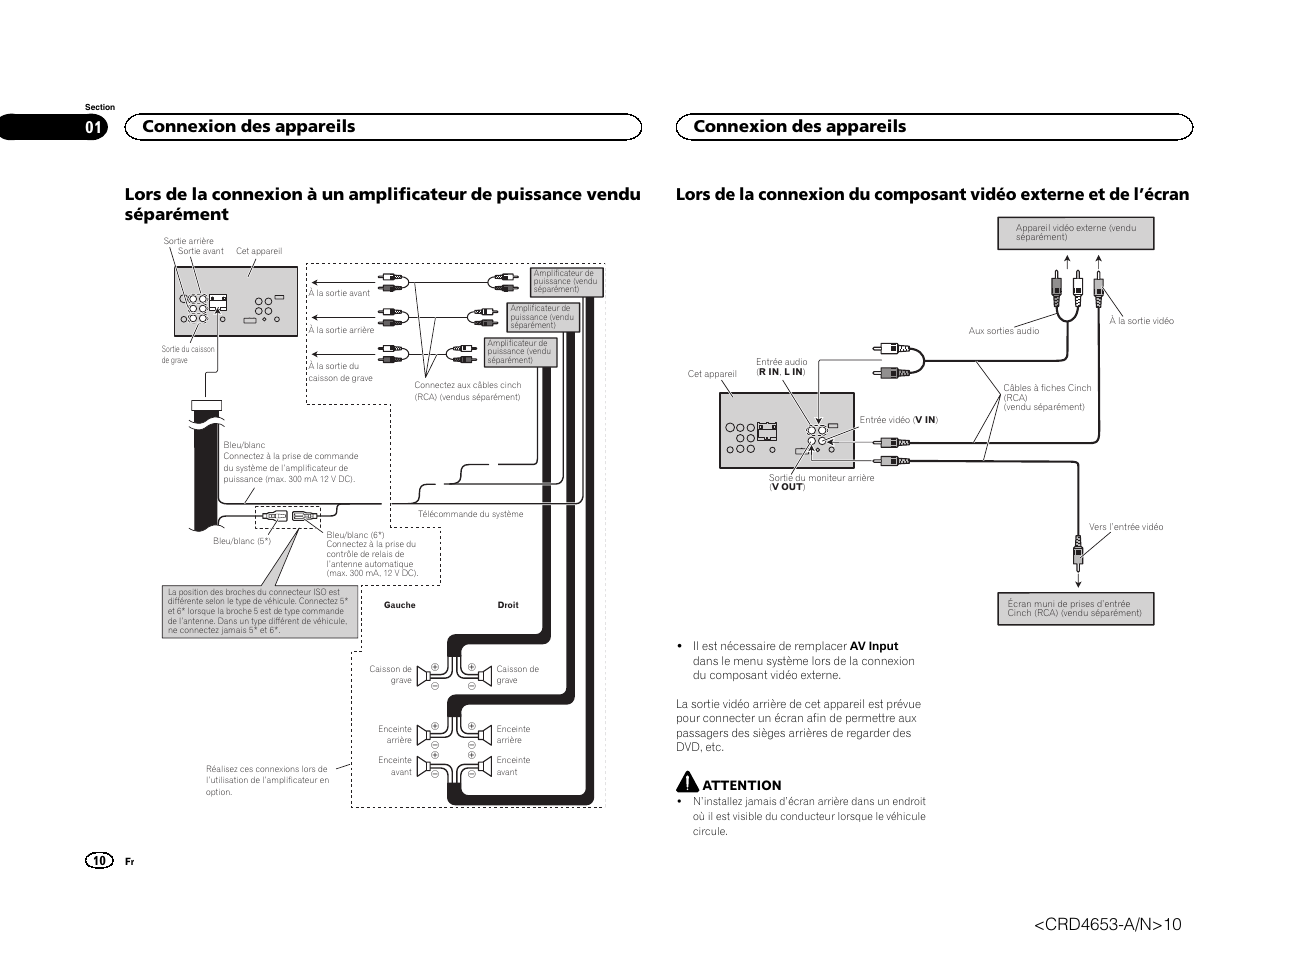 Connexion des appareils | Pioneer AVH-X1500DVD User Manual | Page 10 / 40